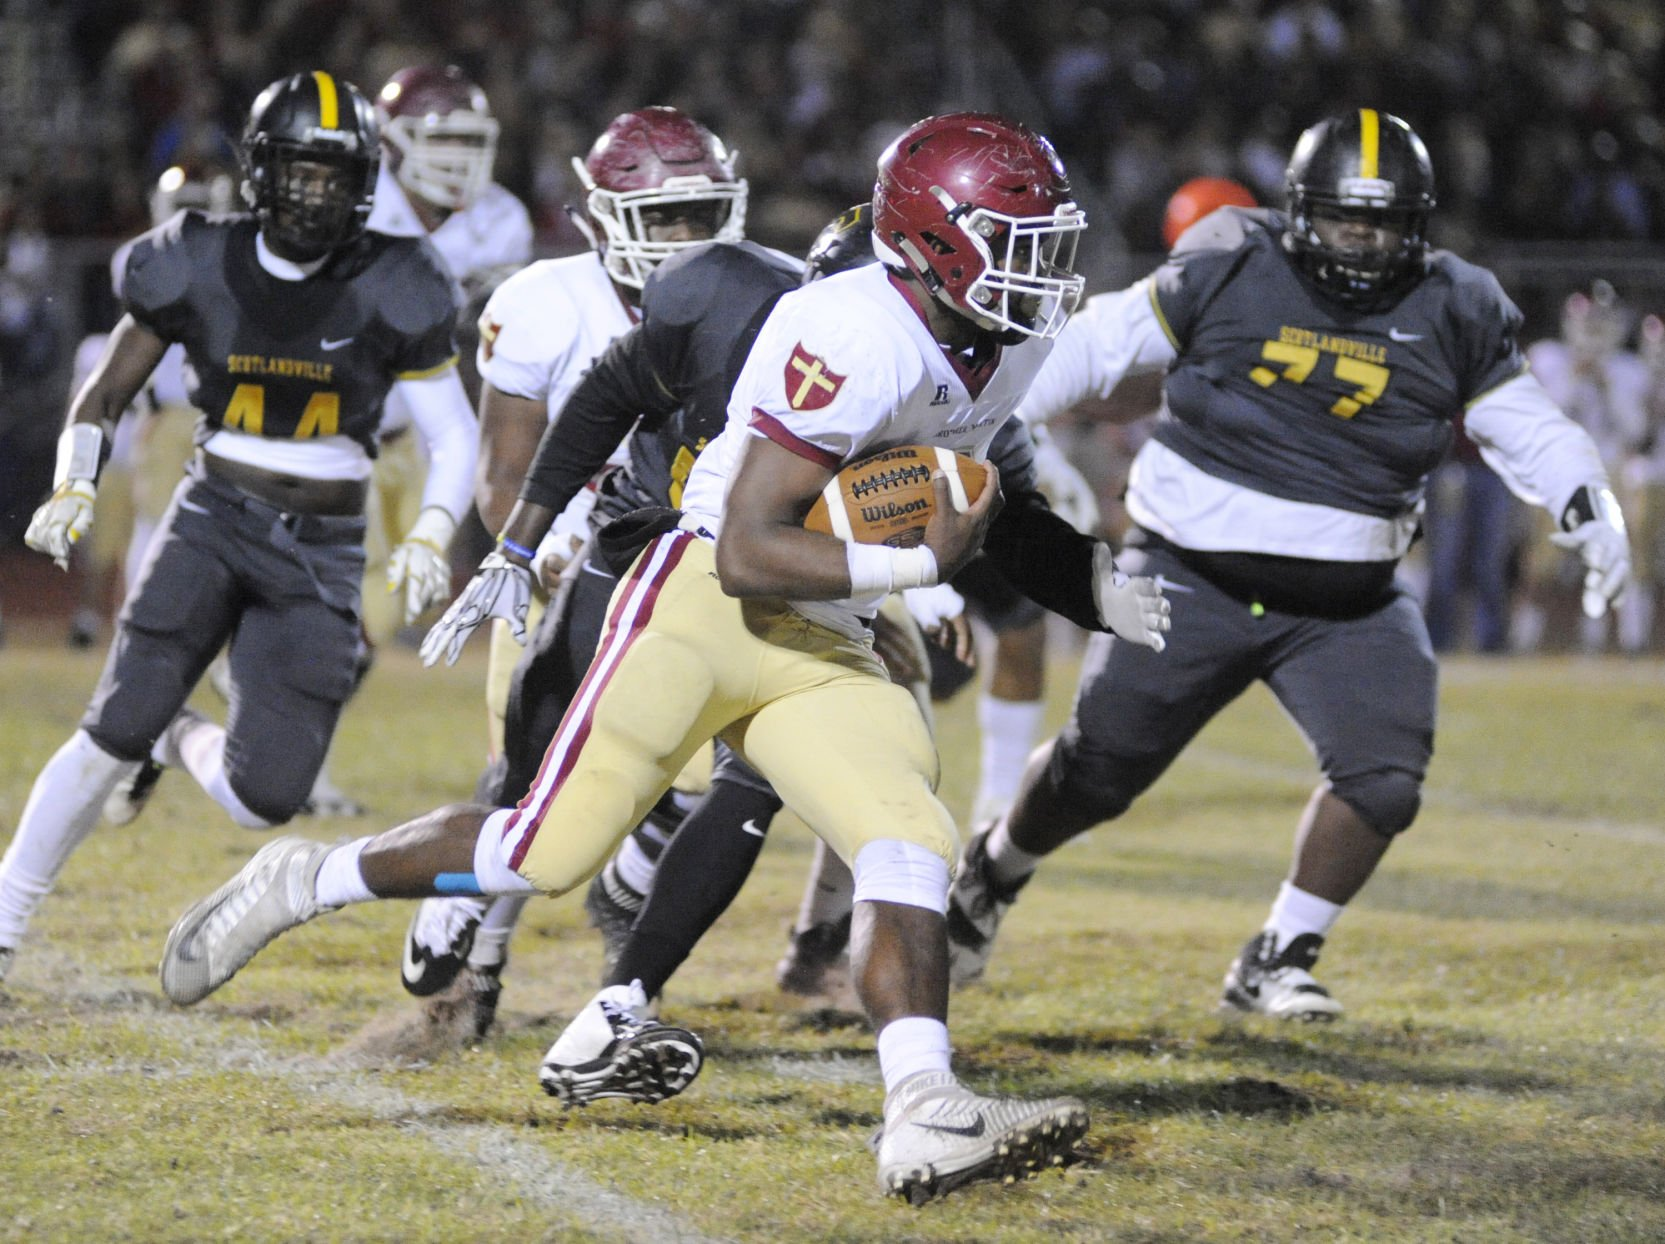 Scotlandville gets past Broadmoor